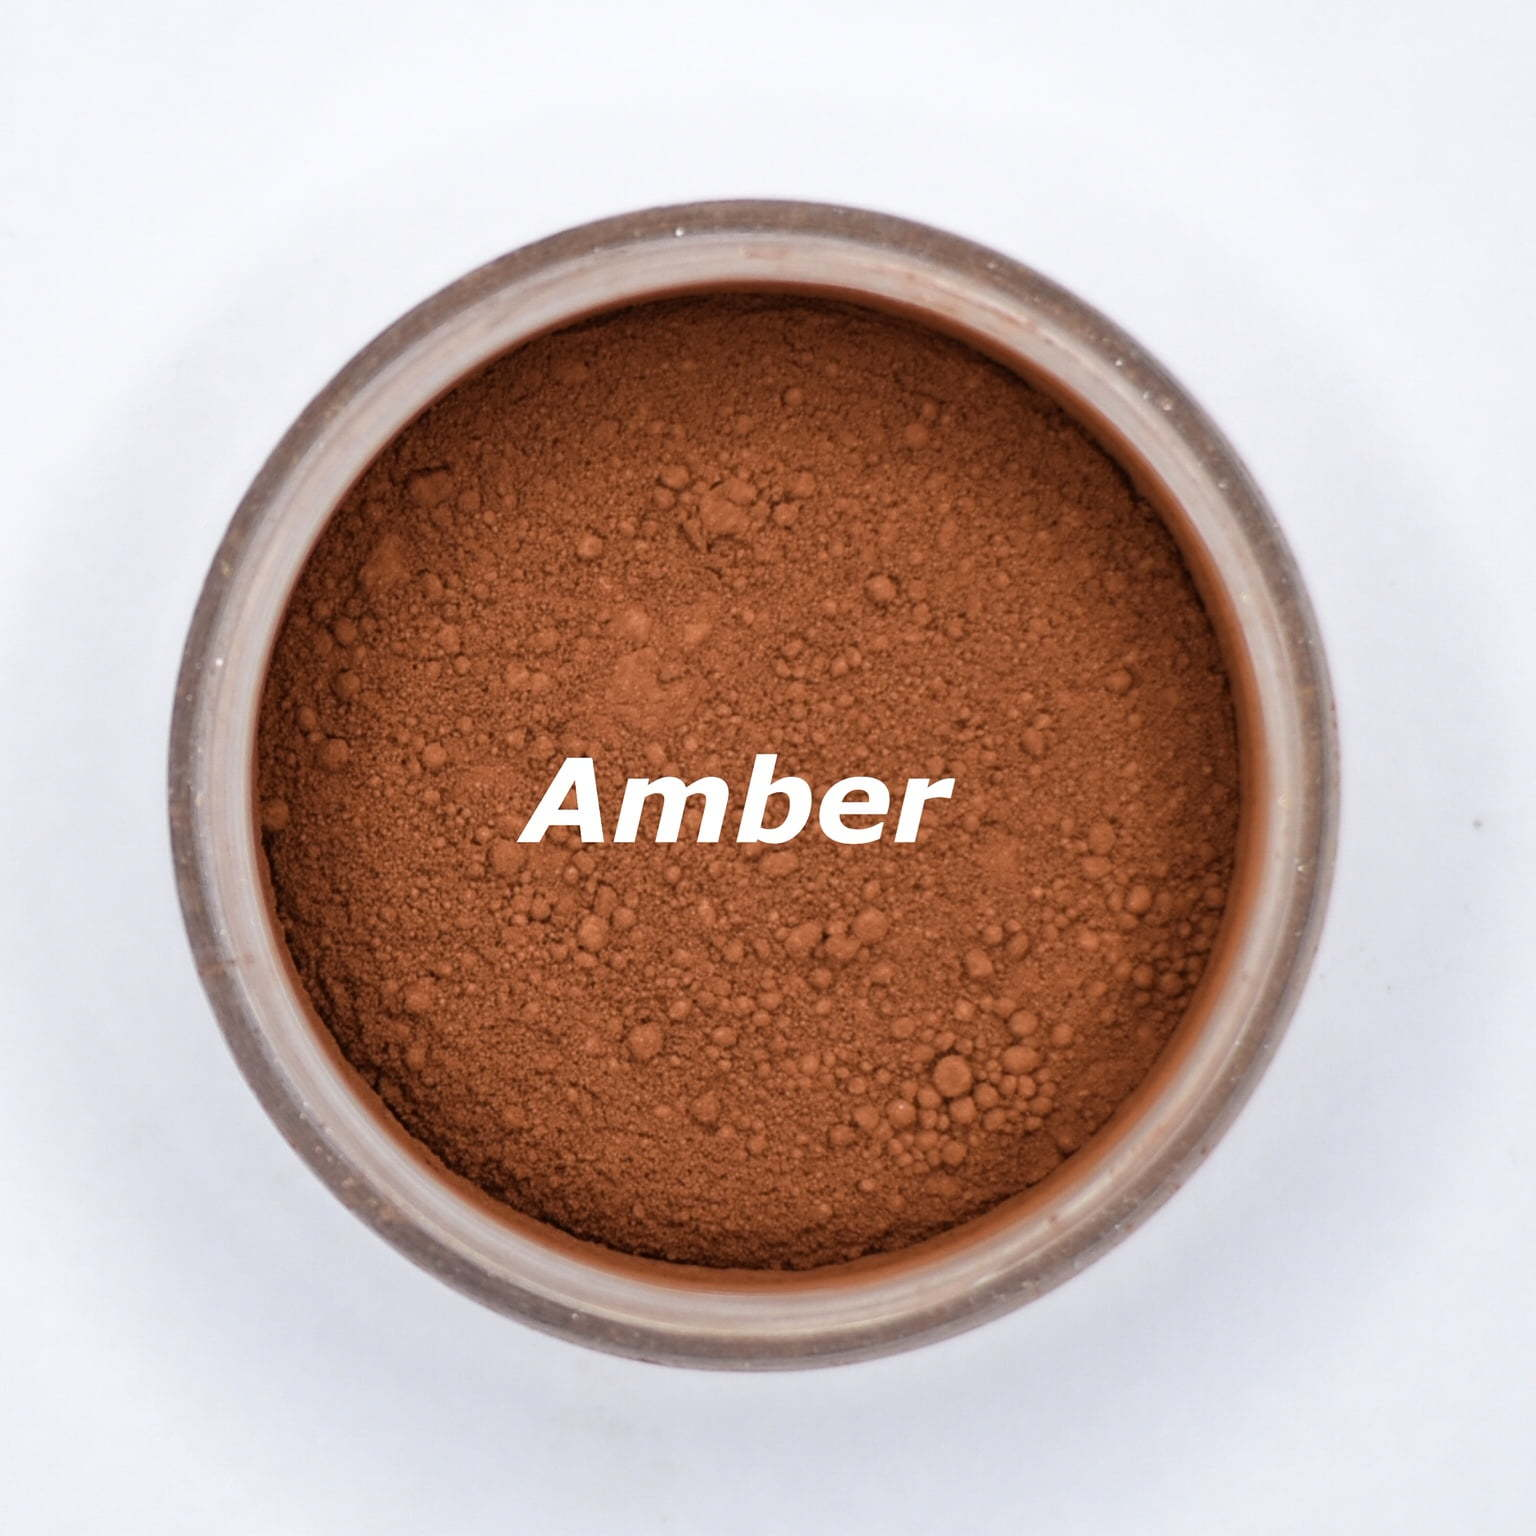 amber foundation makeup